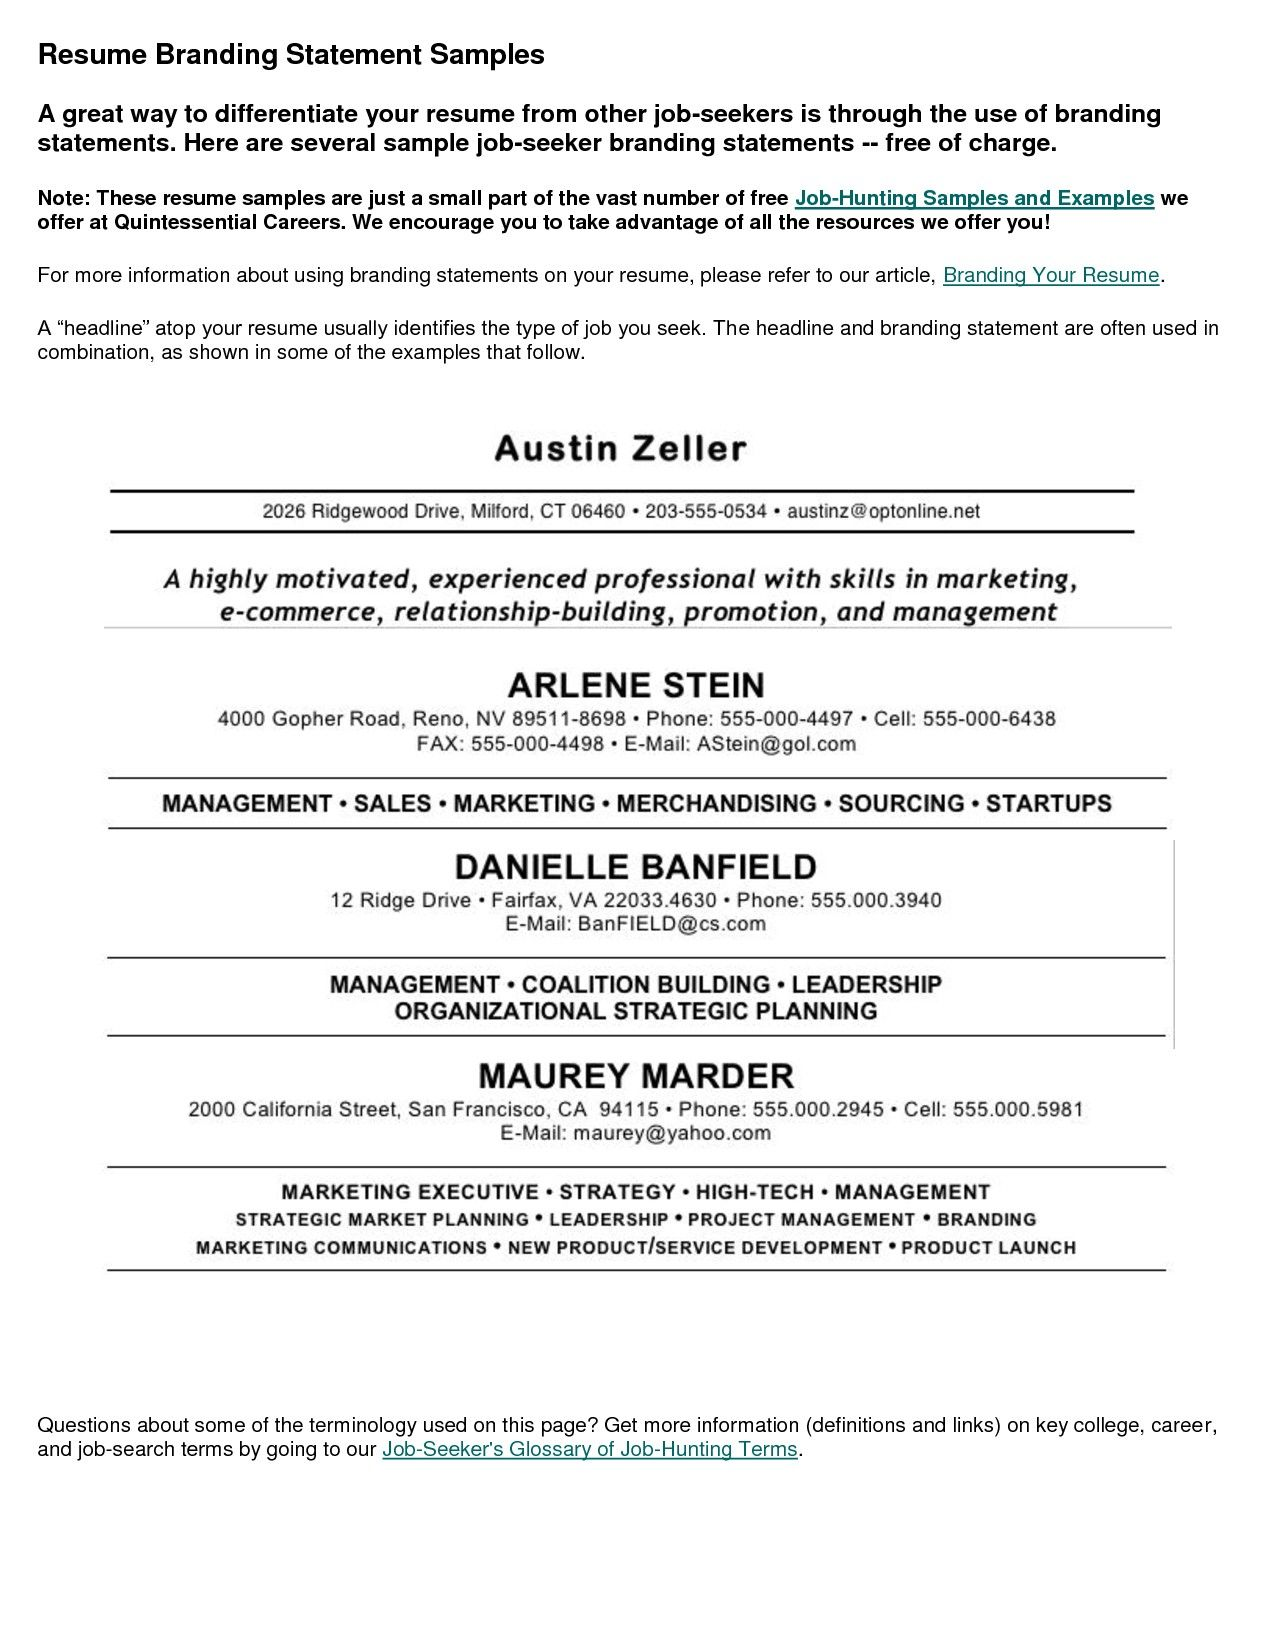 Management Resume Samples Job Resume Sample  Httpwwwresumecareerjobresumesample